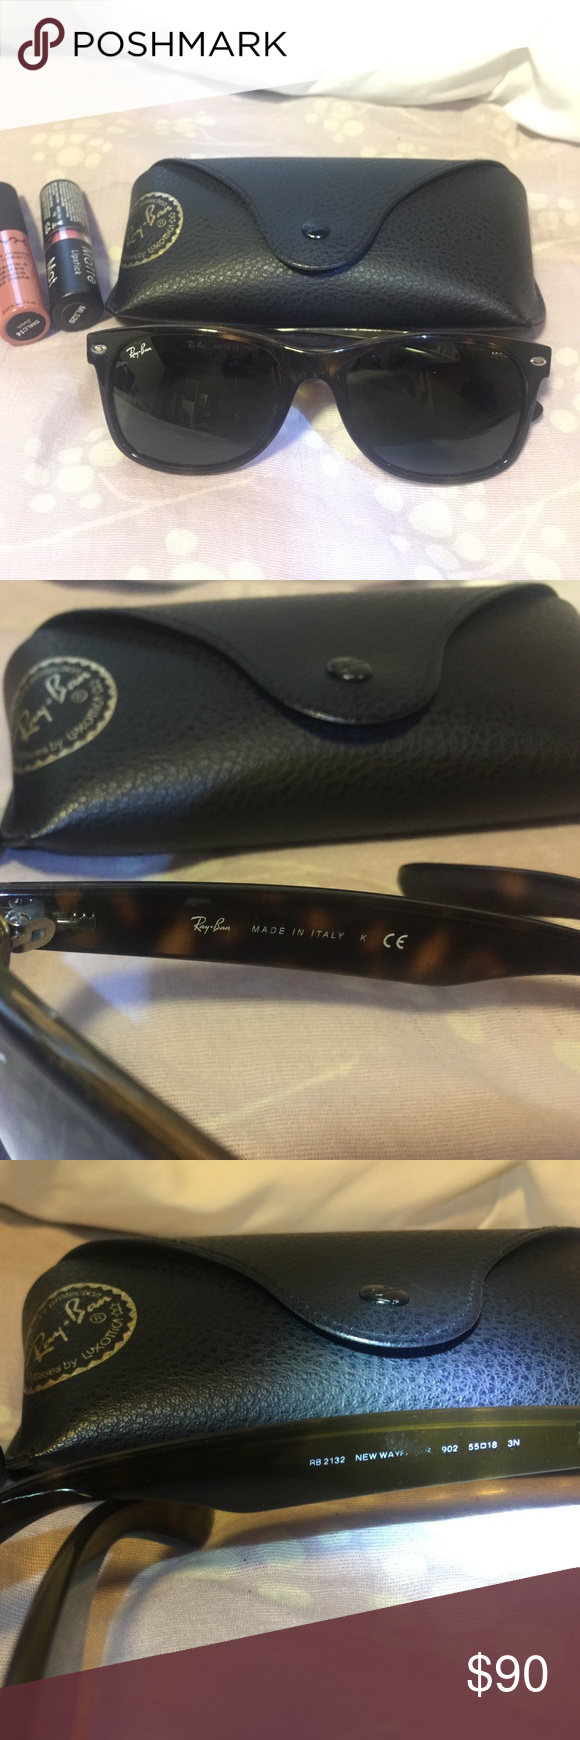 sunglasses for women ray ban